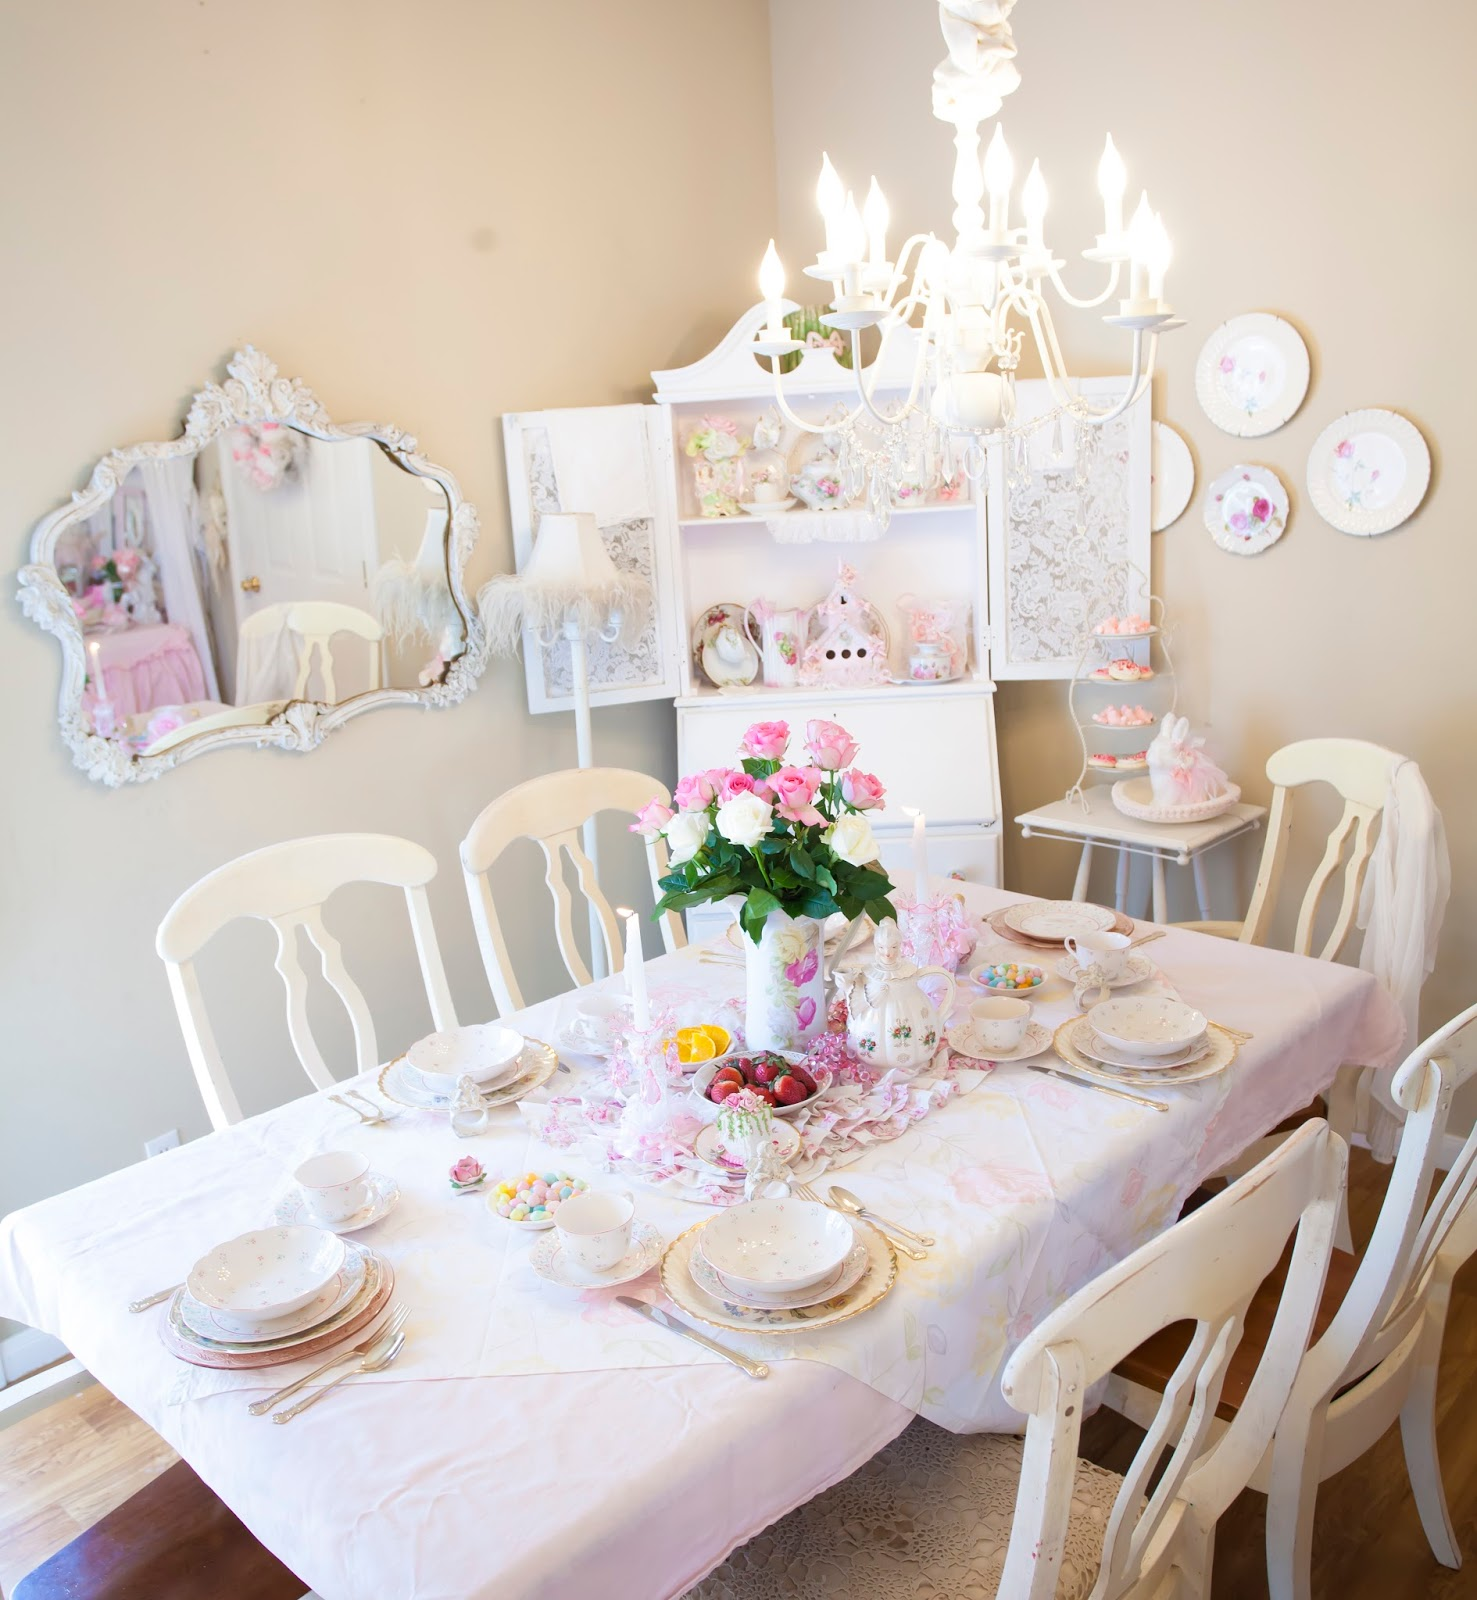 Olivia's Romantic Home: Cottage Chic Dining Room